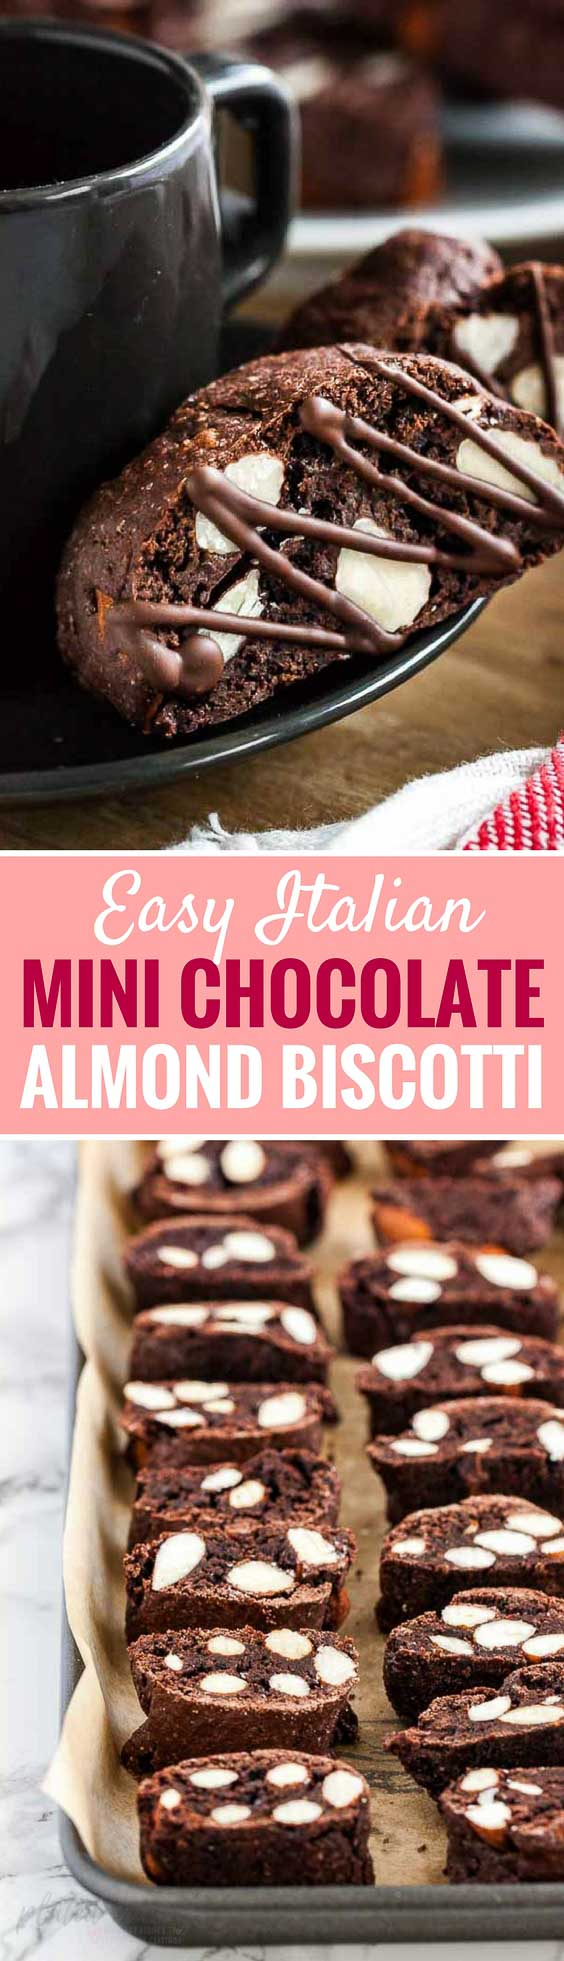 Chocolate Almond Biscotti are a coffee-pairing favorite, they are crunchy, studded with almonds, and easy to make from scratch!  These twice-baked Italian cookies are perfect for dipping into a cup of coffee or hot chocolate.